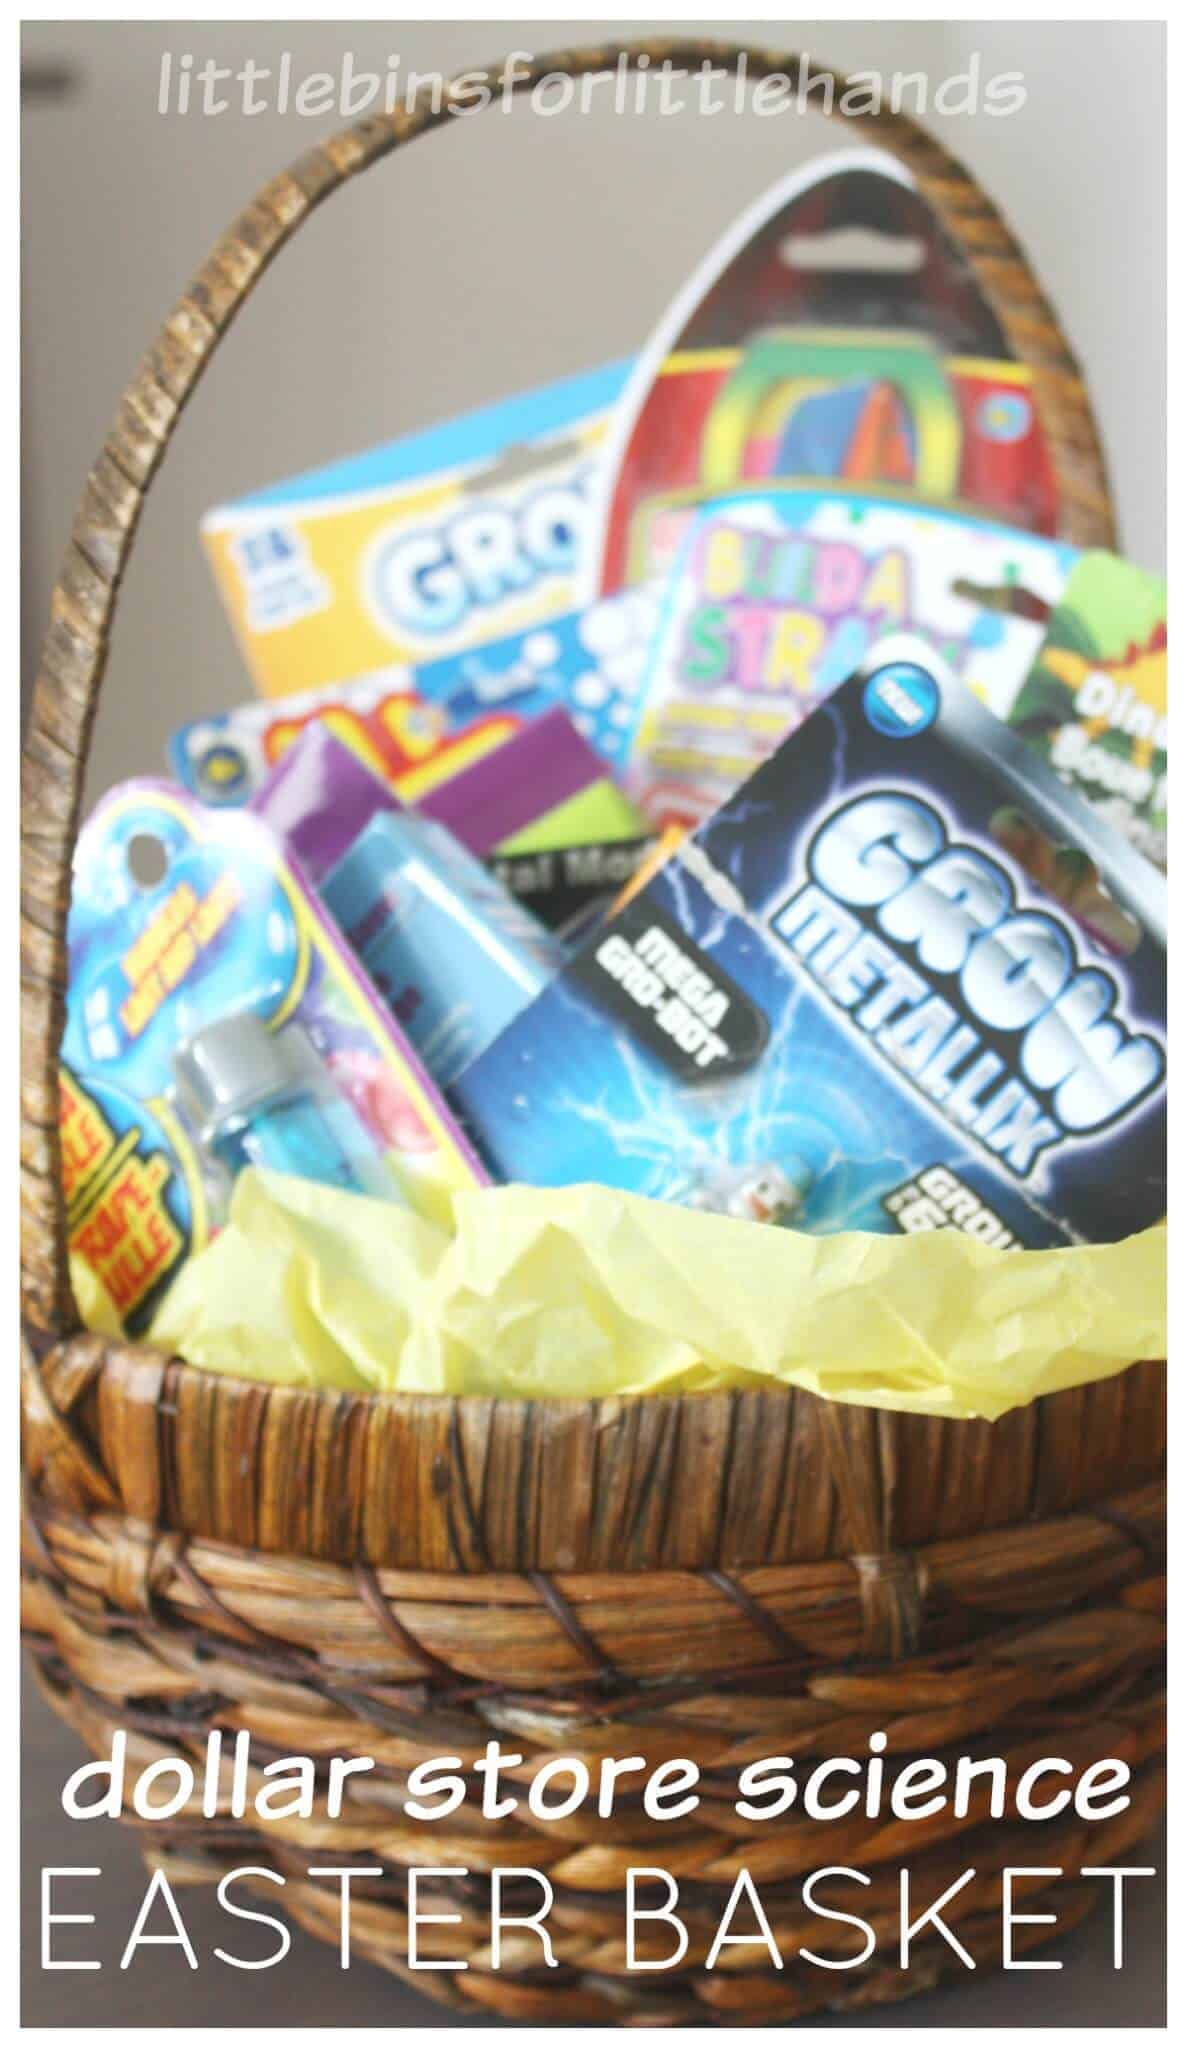 Dollar store science kits for easter basket ideas and fillers negle Choice Image